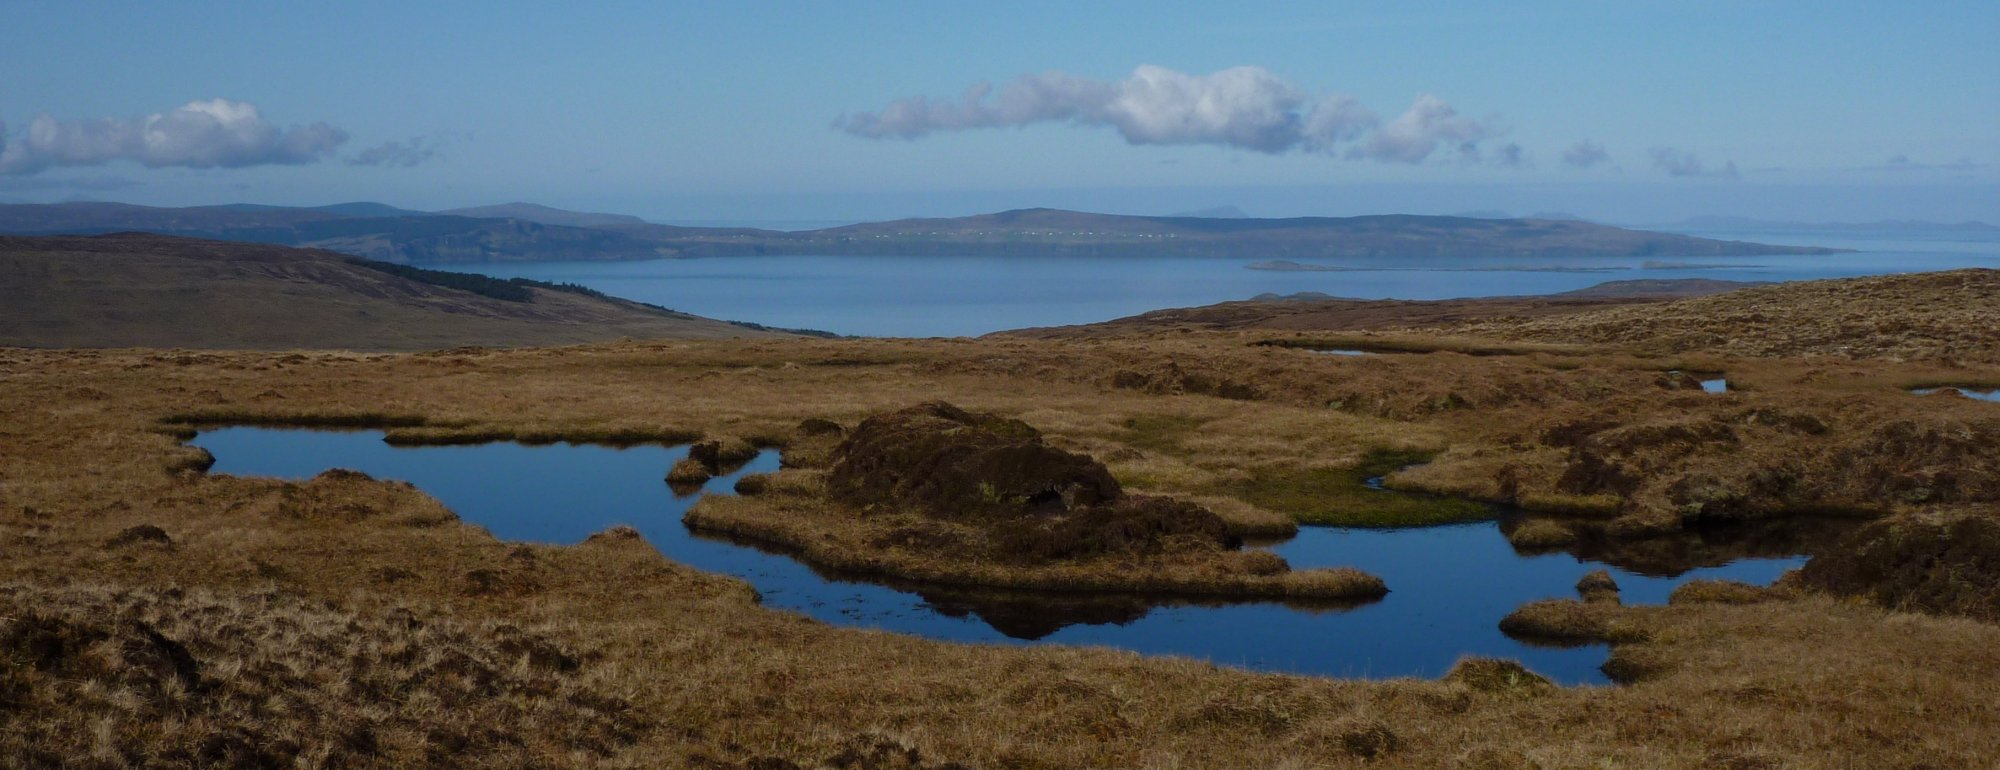 Across the tiny lochan on Beinn Edra towards the Waternish peninsula